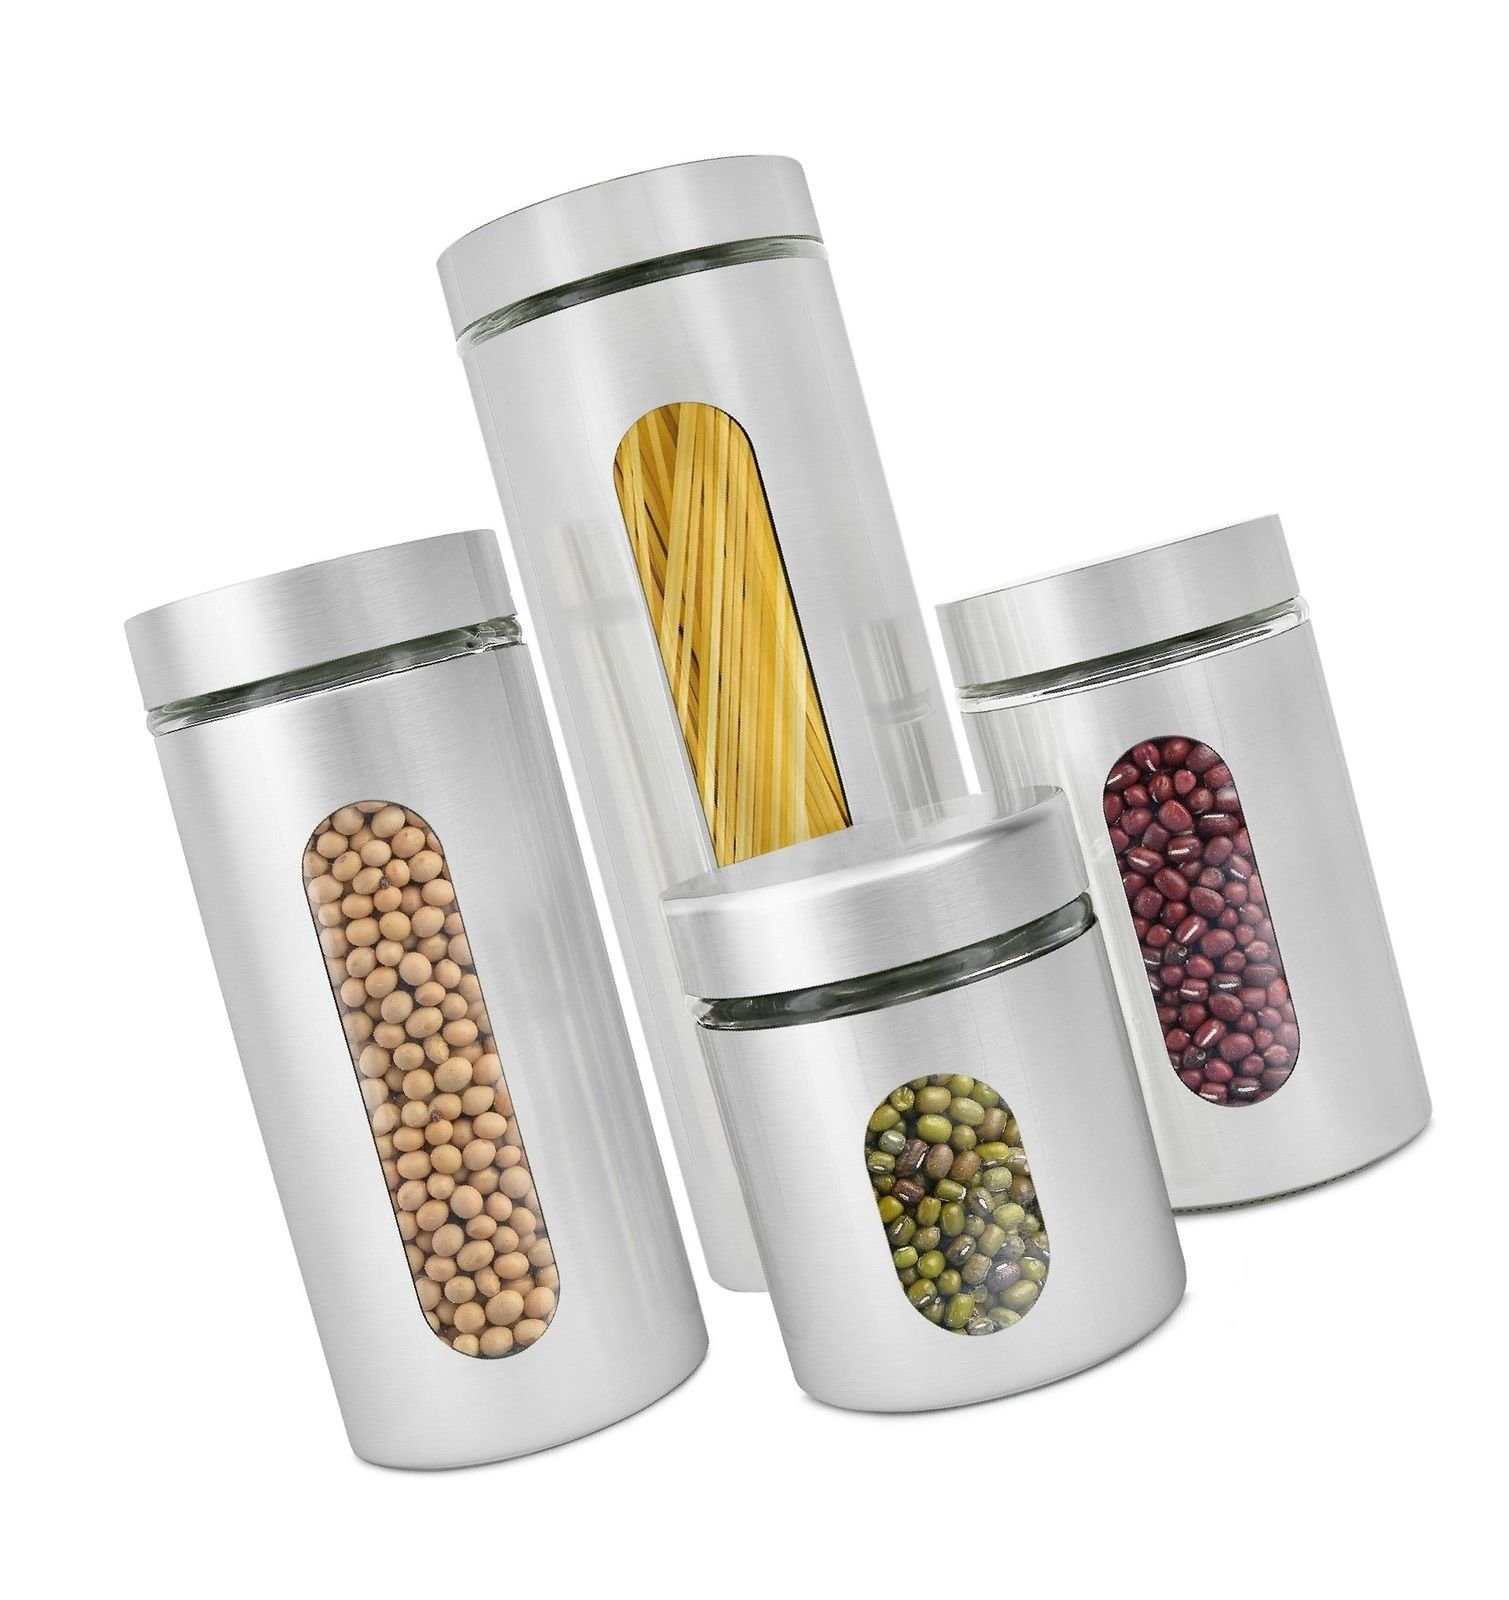 Tari_Kitchen Estilo 4 Piece Brushed Stainless Steel and Glass Canisters with Window Silver by Tari_Kitchen